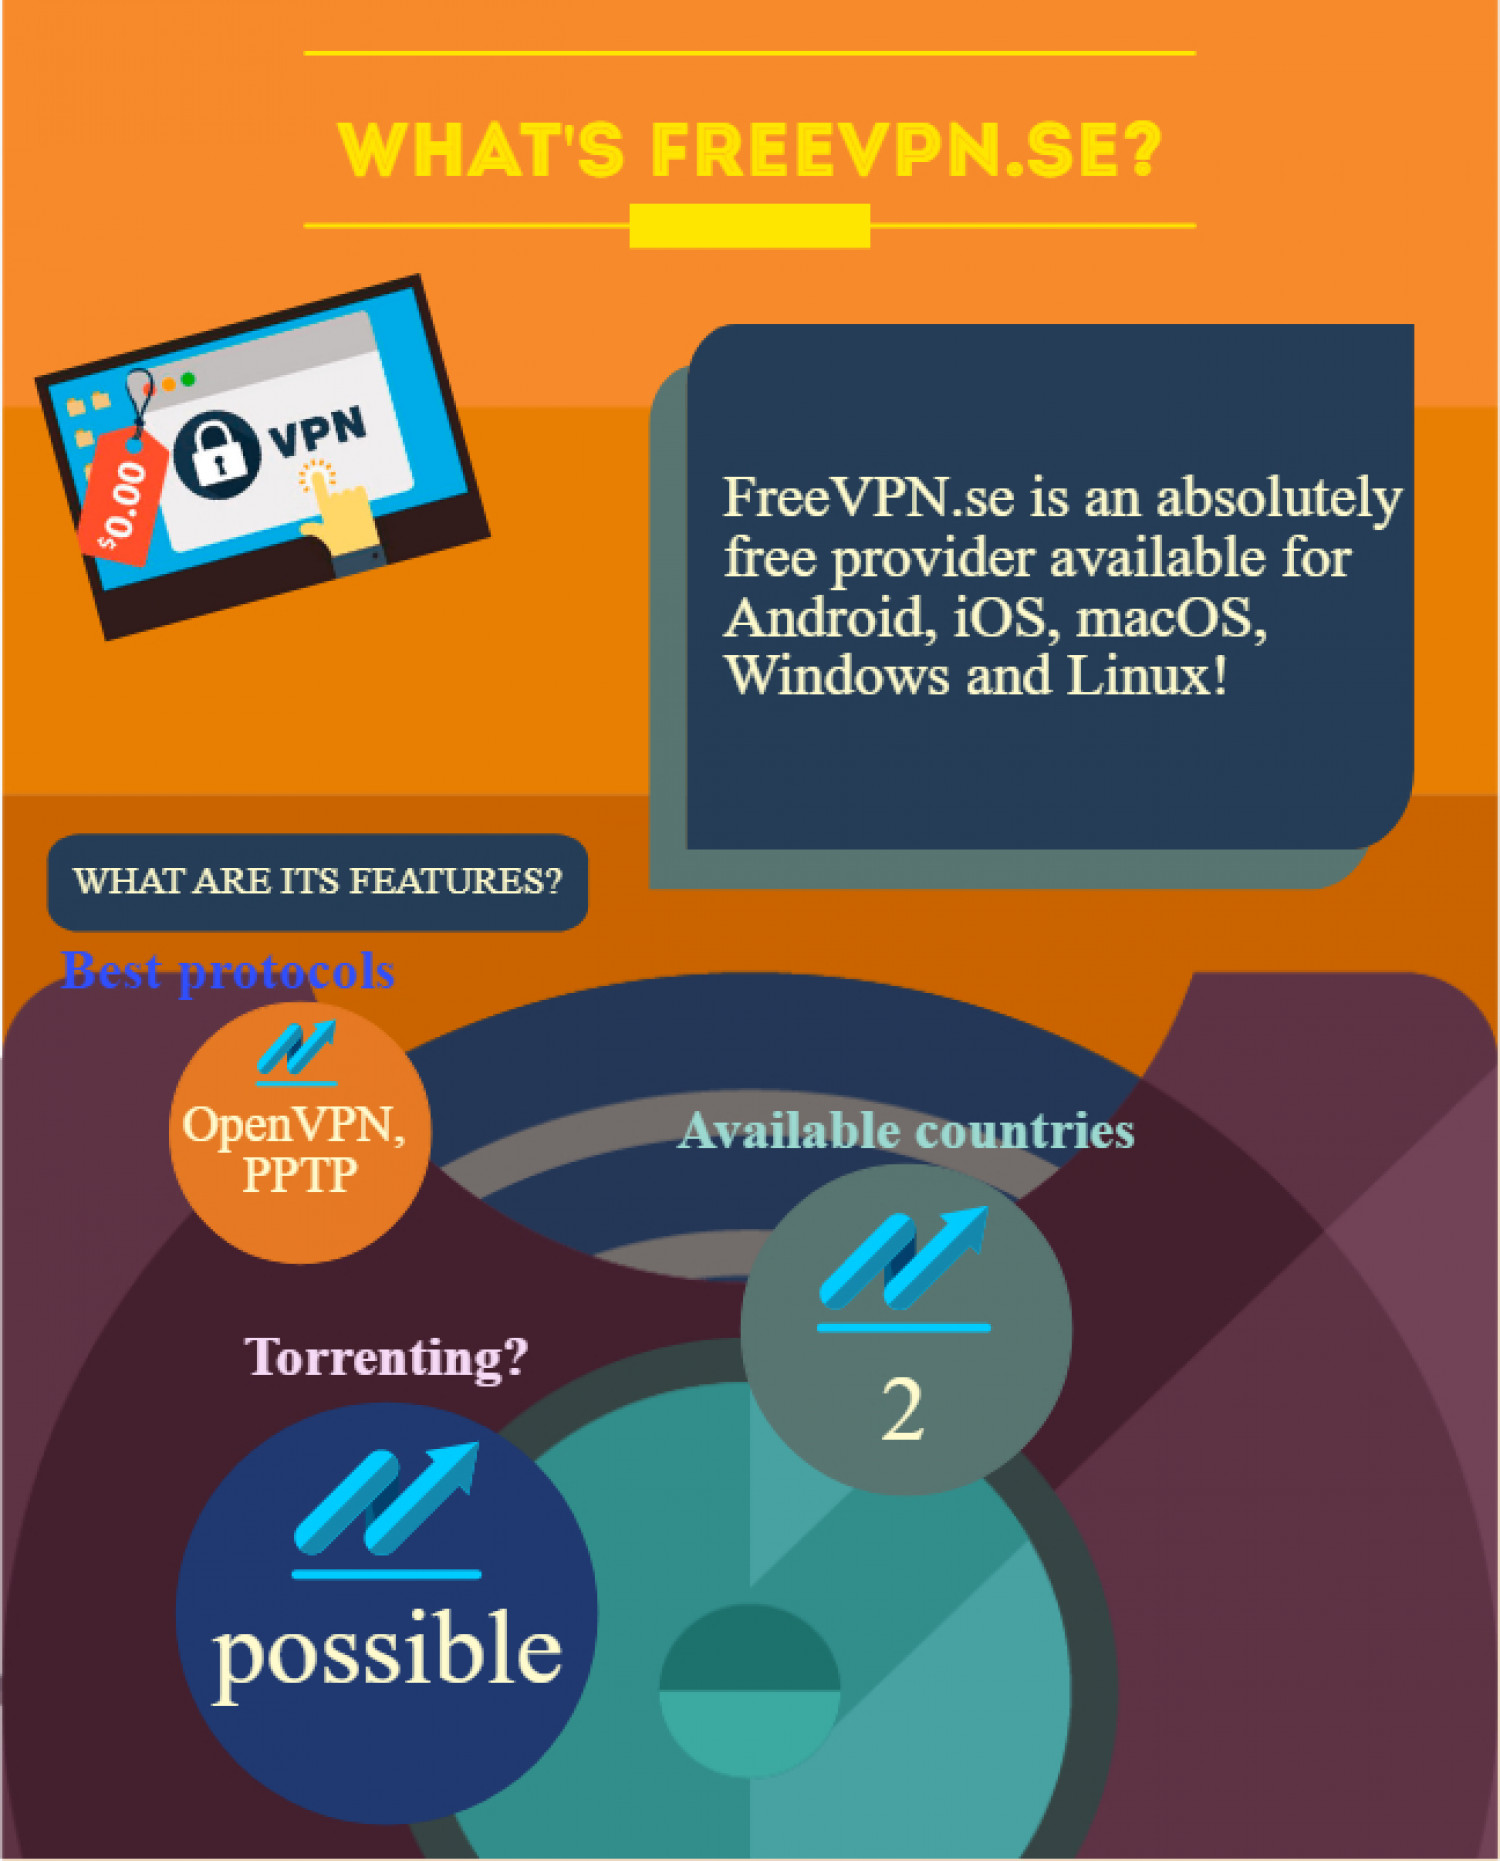 Free VPN provider: is it possible in 2019? Infographic